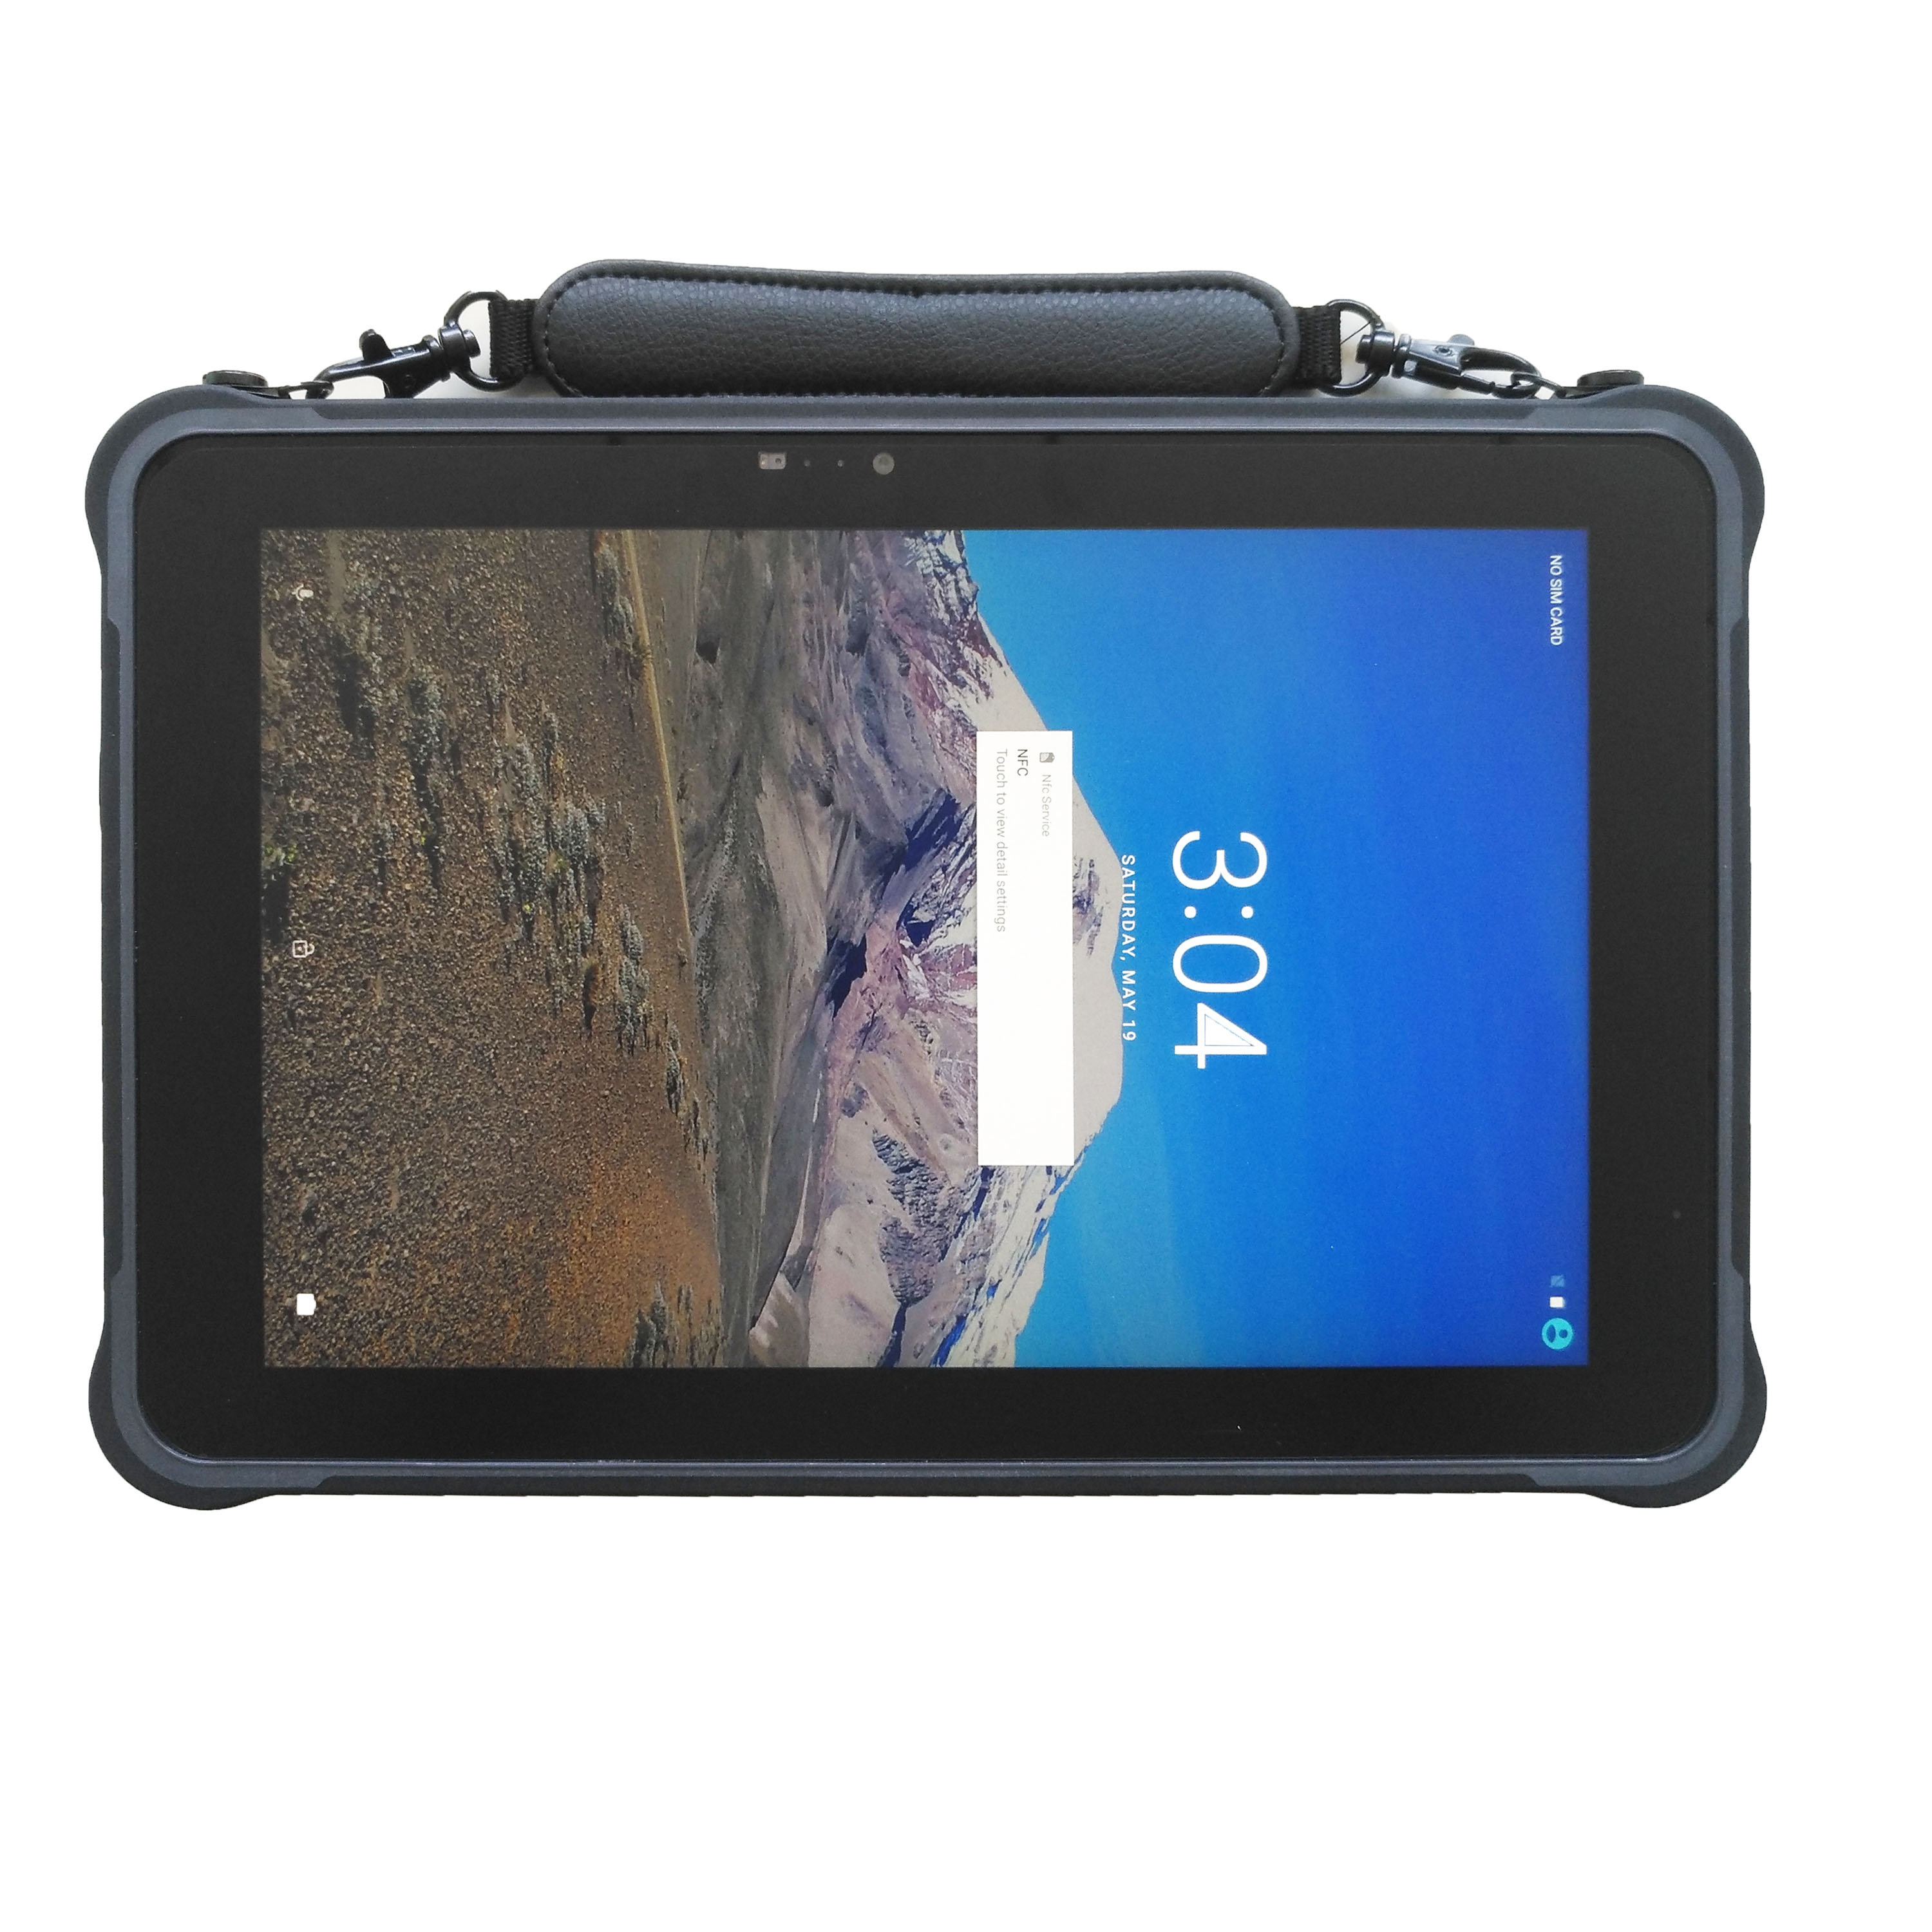 Octa-core sunshine readable 10.1 inch hot swap android 7.0 rugged tablet